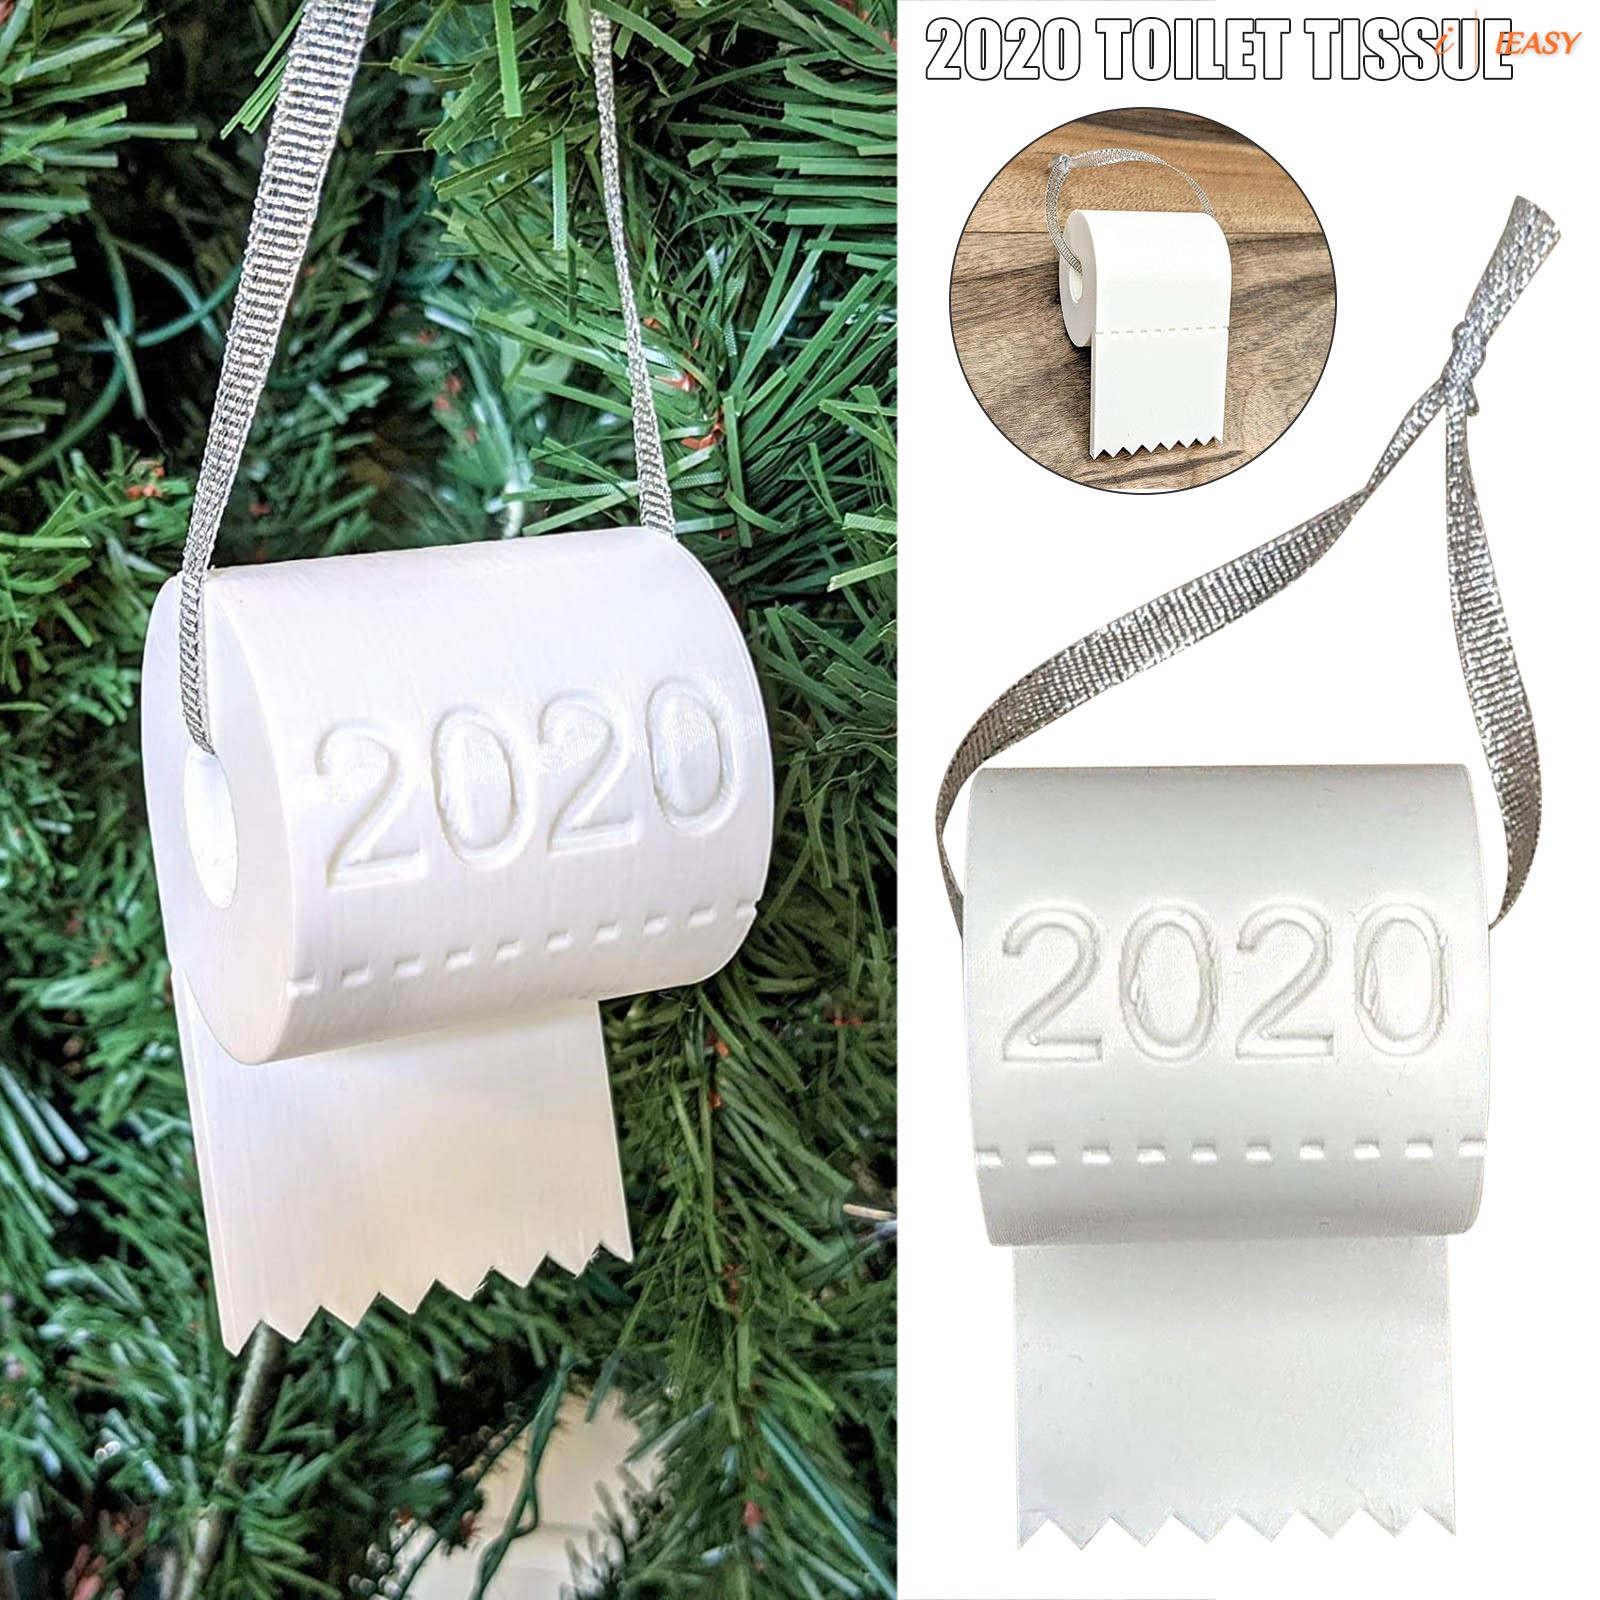 2020 Christmas Ornament Toilet Paper Simulation Fun Christmas Tree Hanging Decoration Shopee Philippines